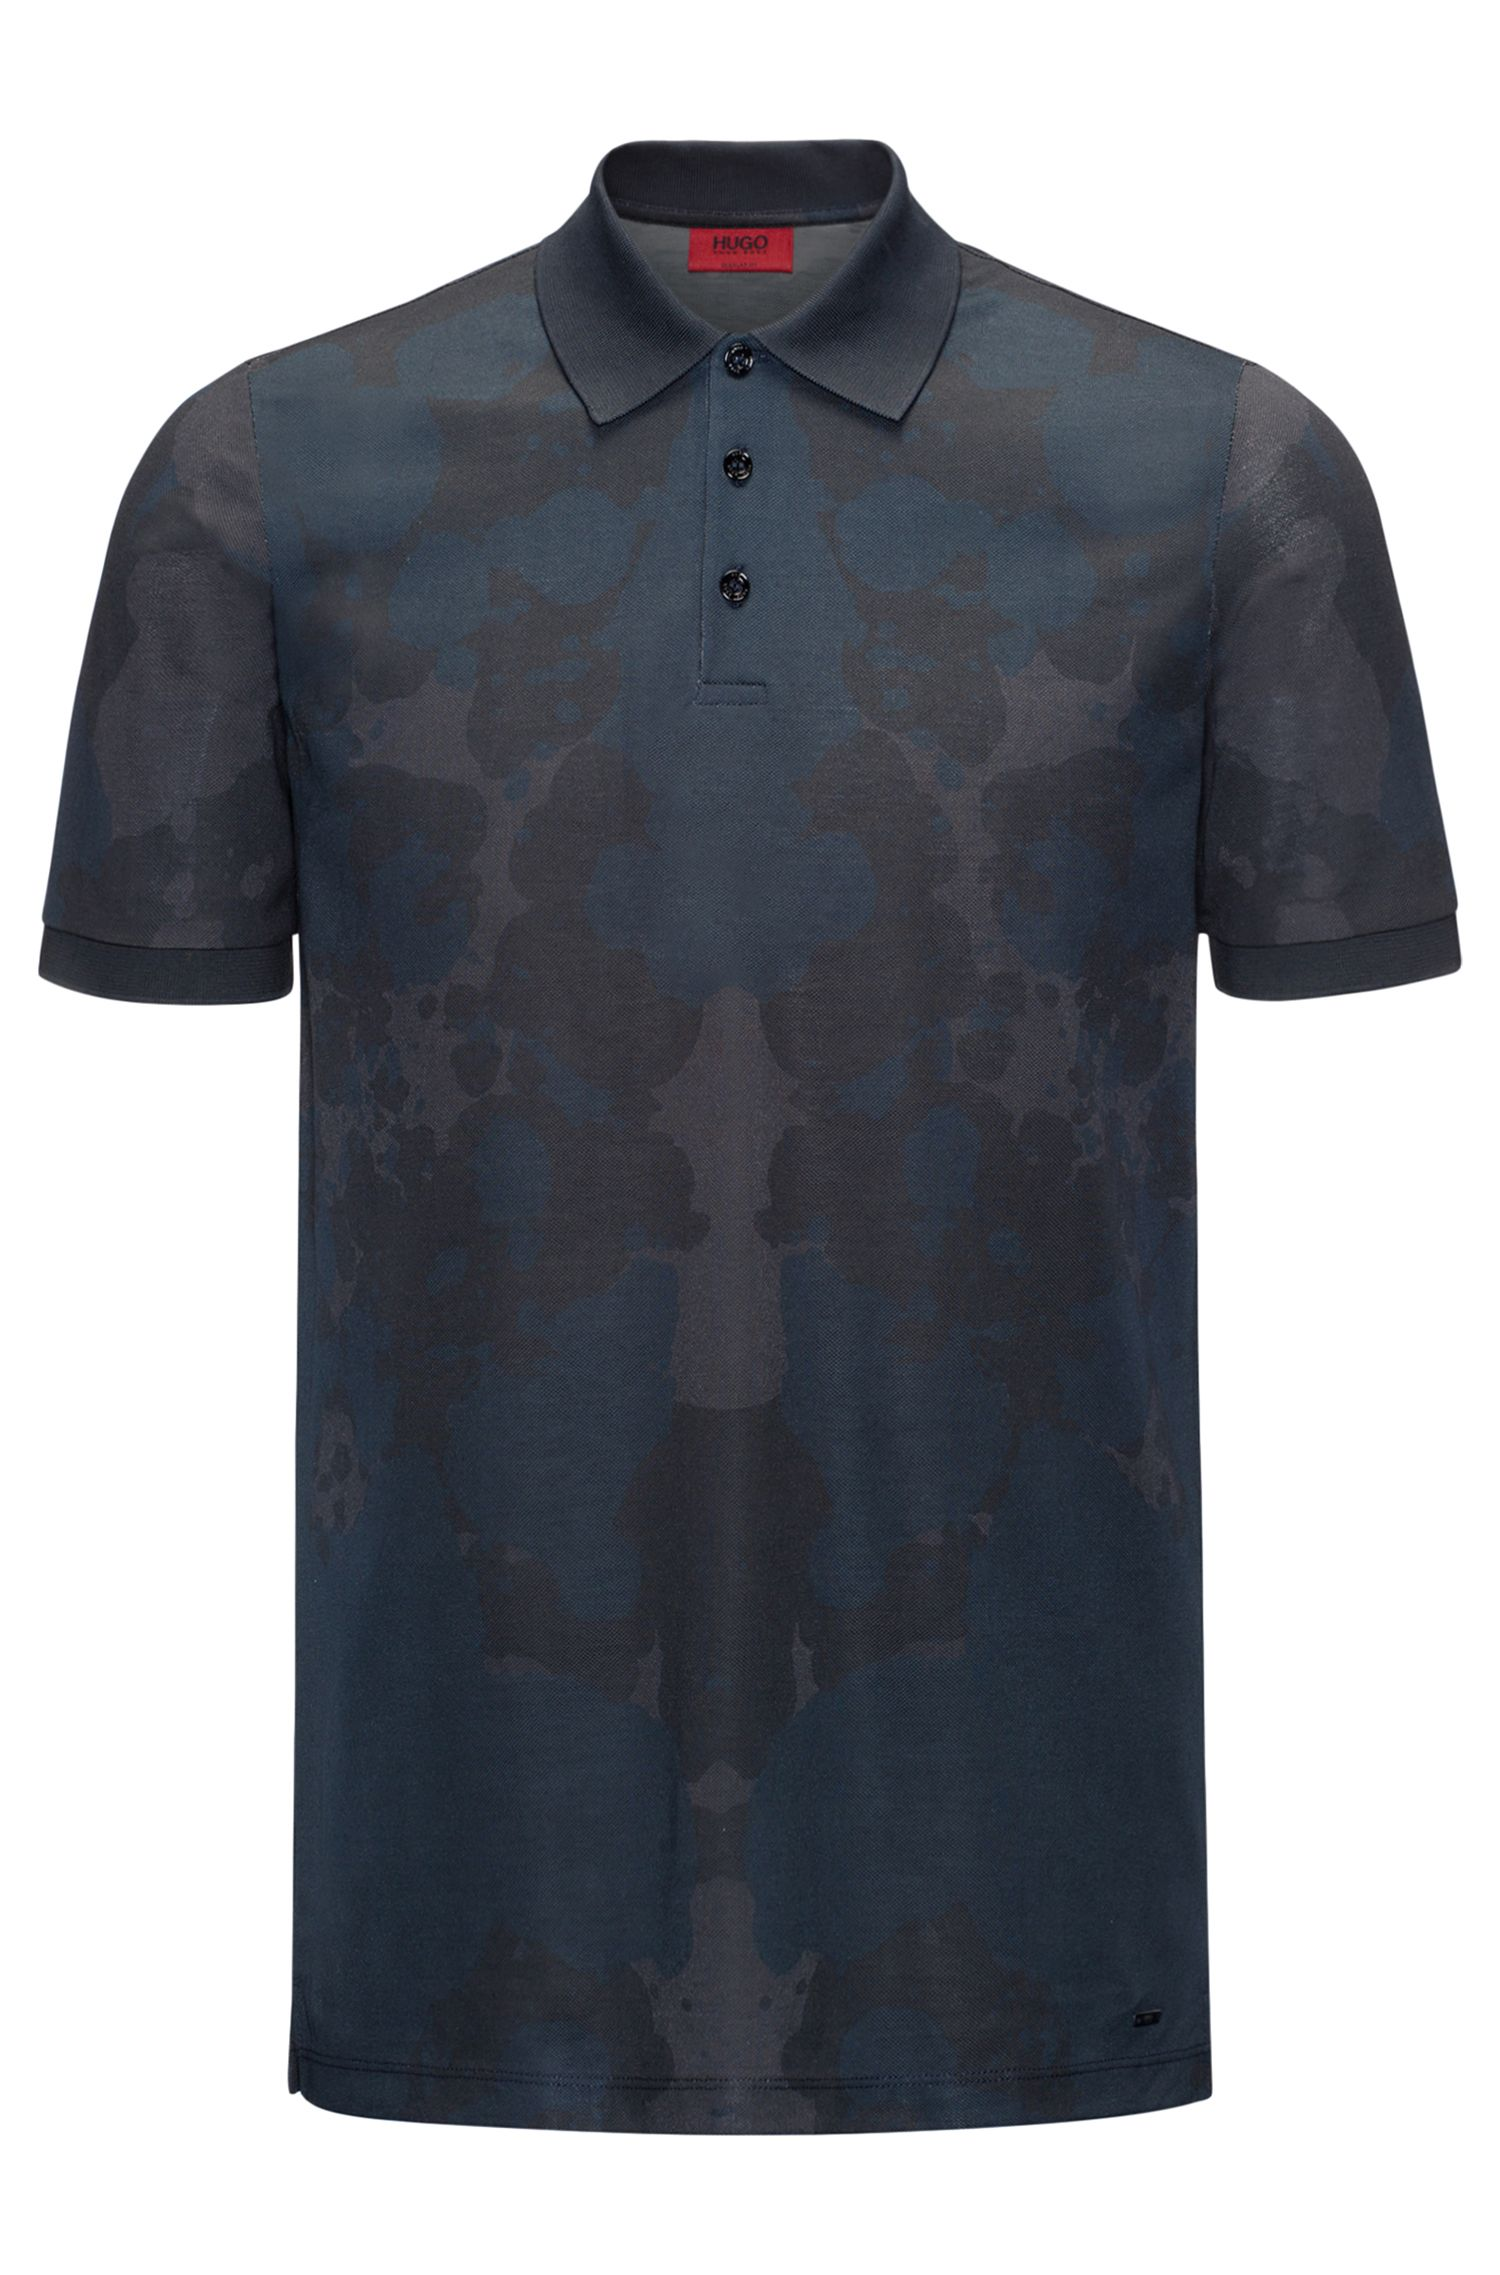 Rorschach-Print Cotton Polo Shirt, Slim Fit | Dridge